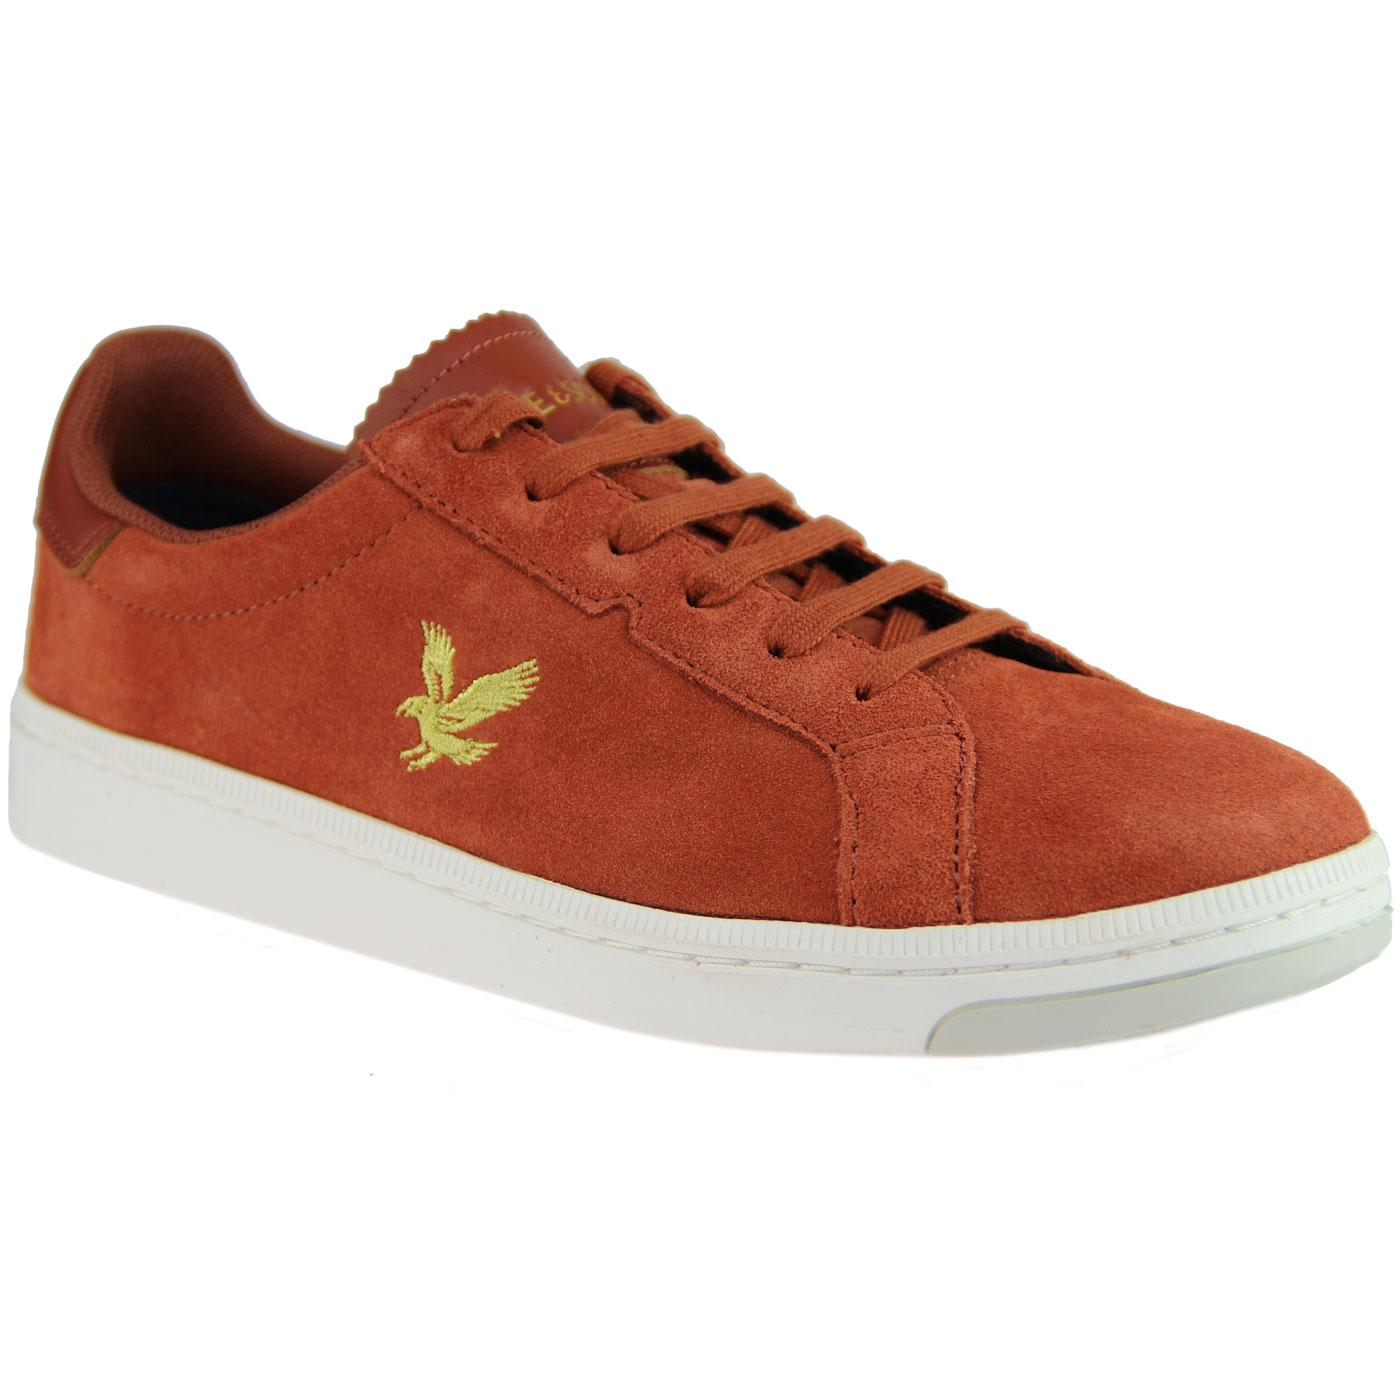 Burchill LYLE & SCOTT Retro Mod Suede Trainers BS